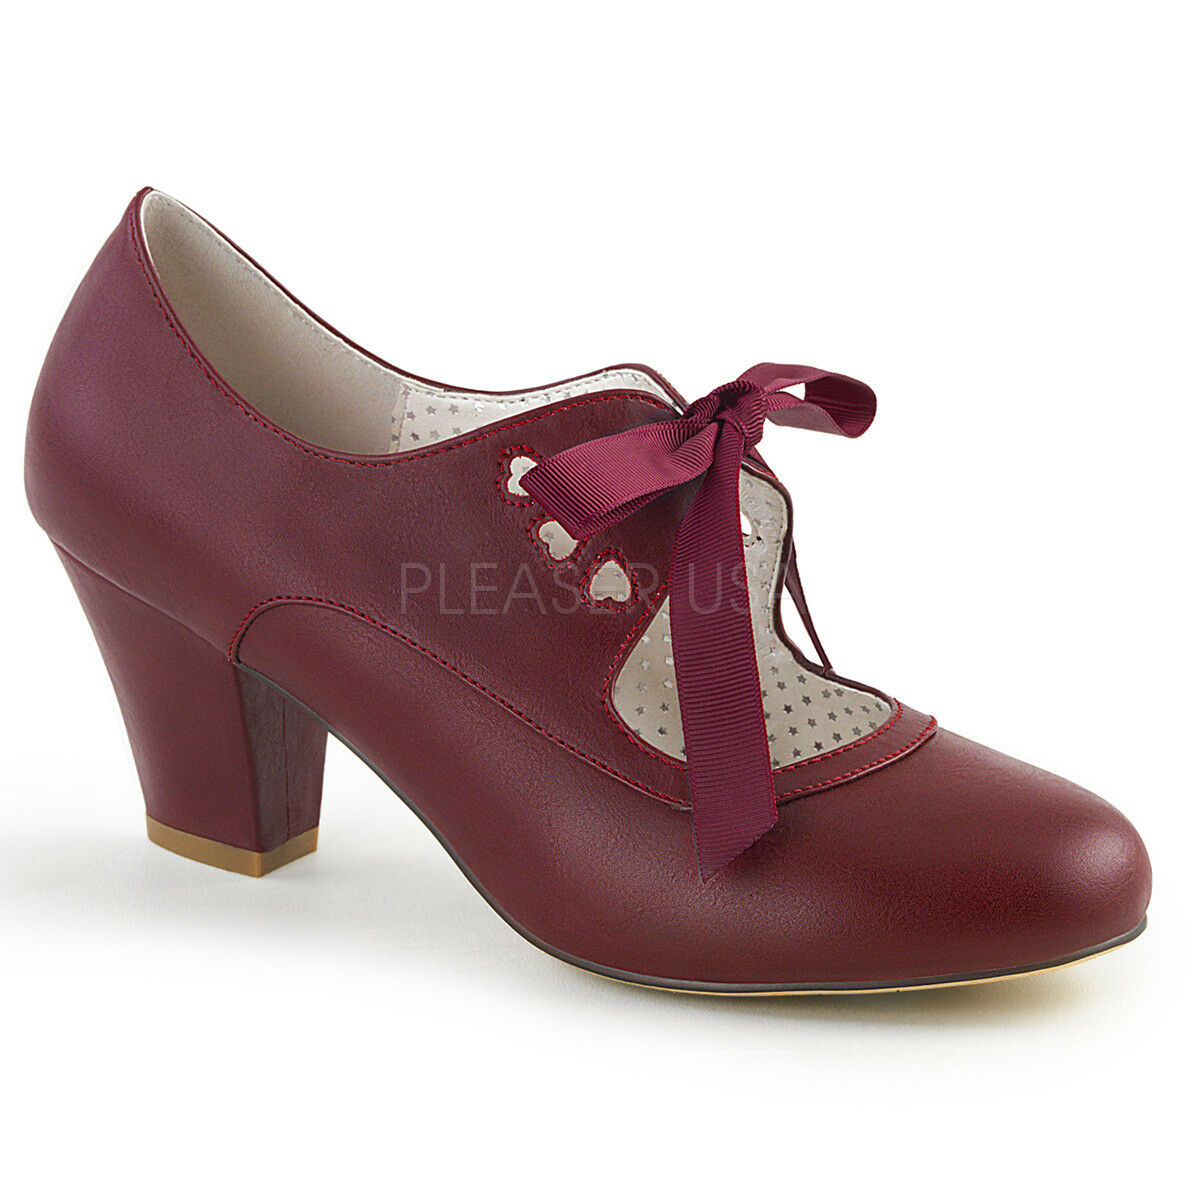 Pin Up Couture WIGGLE-17 32 50 Cuban Heel Pumps 2 1/2